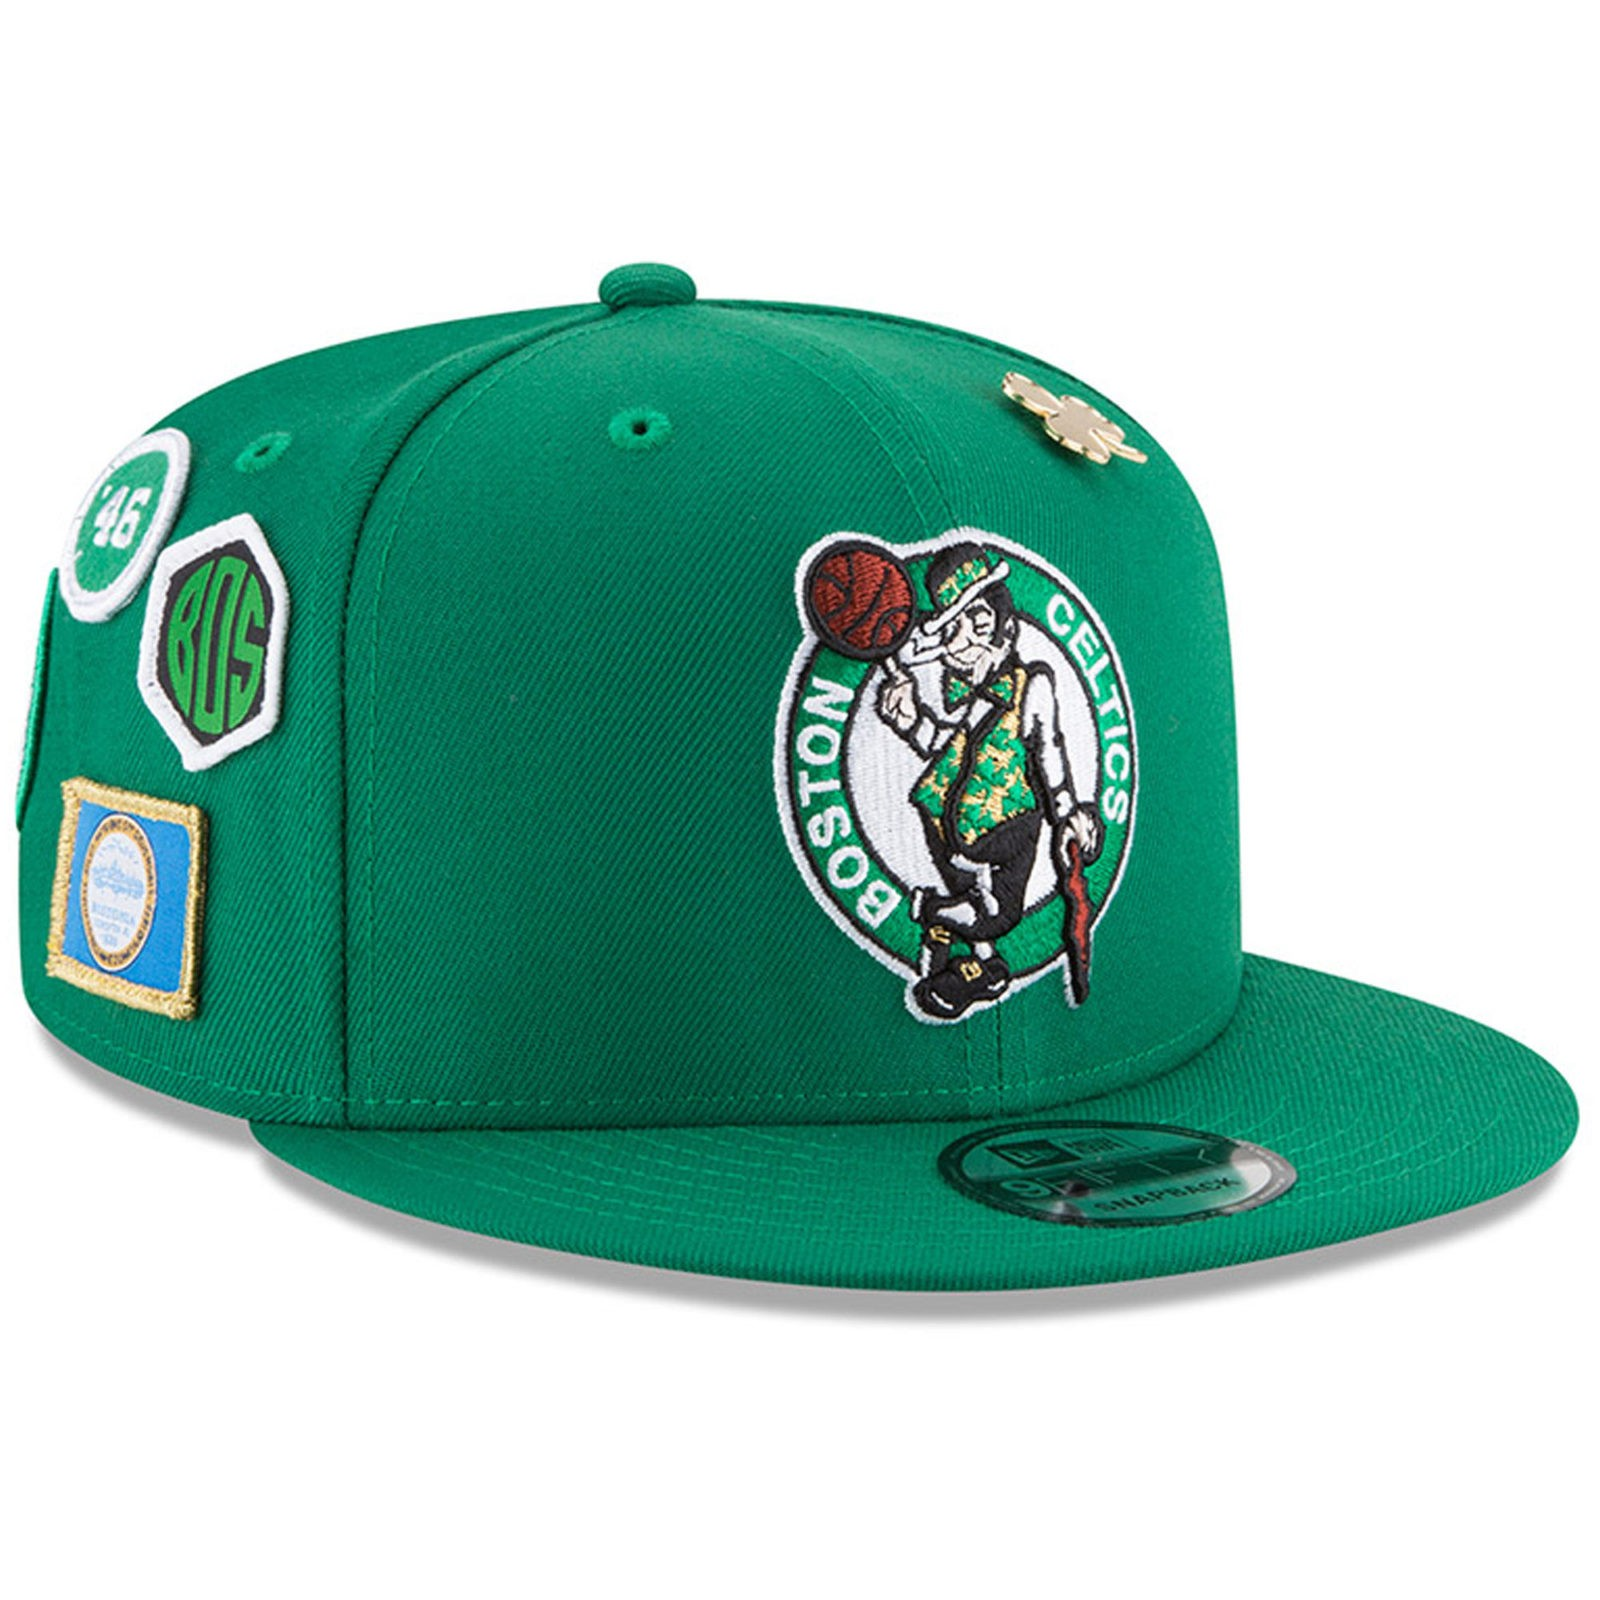 7cd2238079a Boston Celtics New Era 2018 Draft 9FIFTY Snapback Adjustable Hat – Green